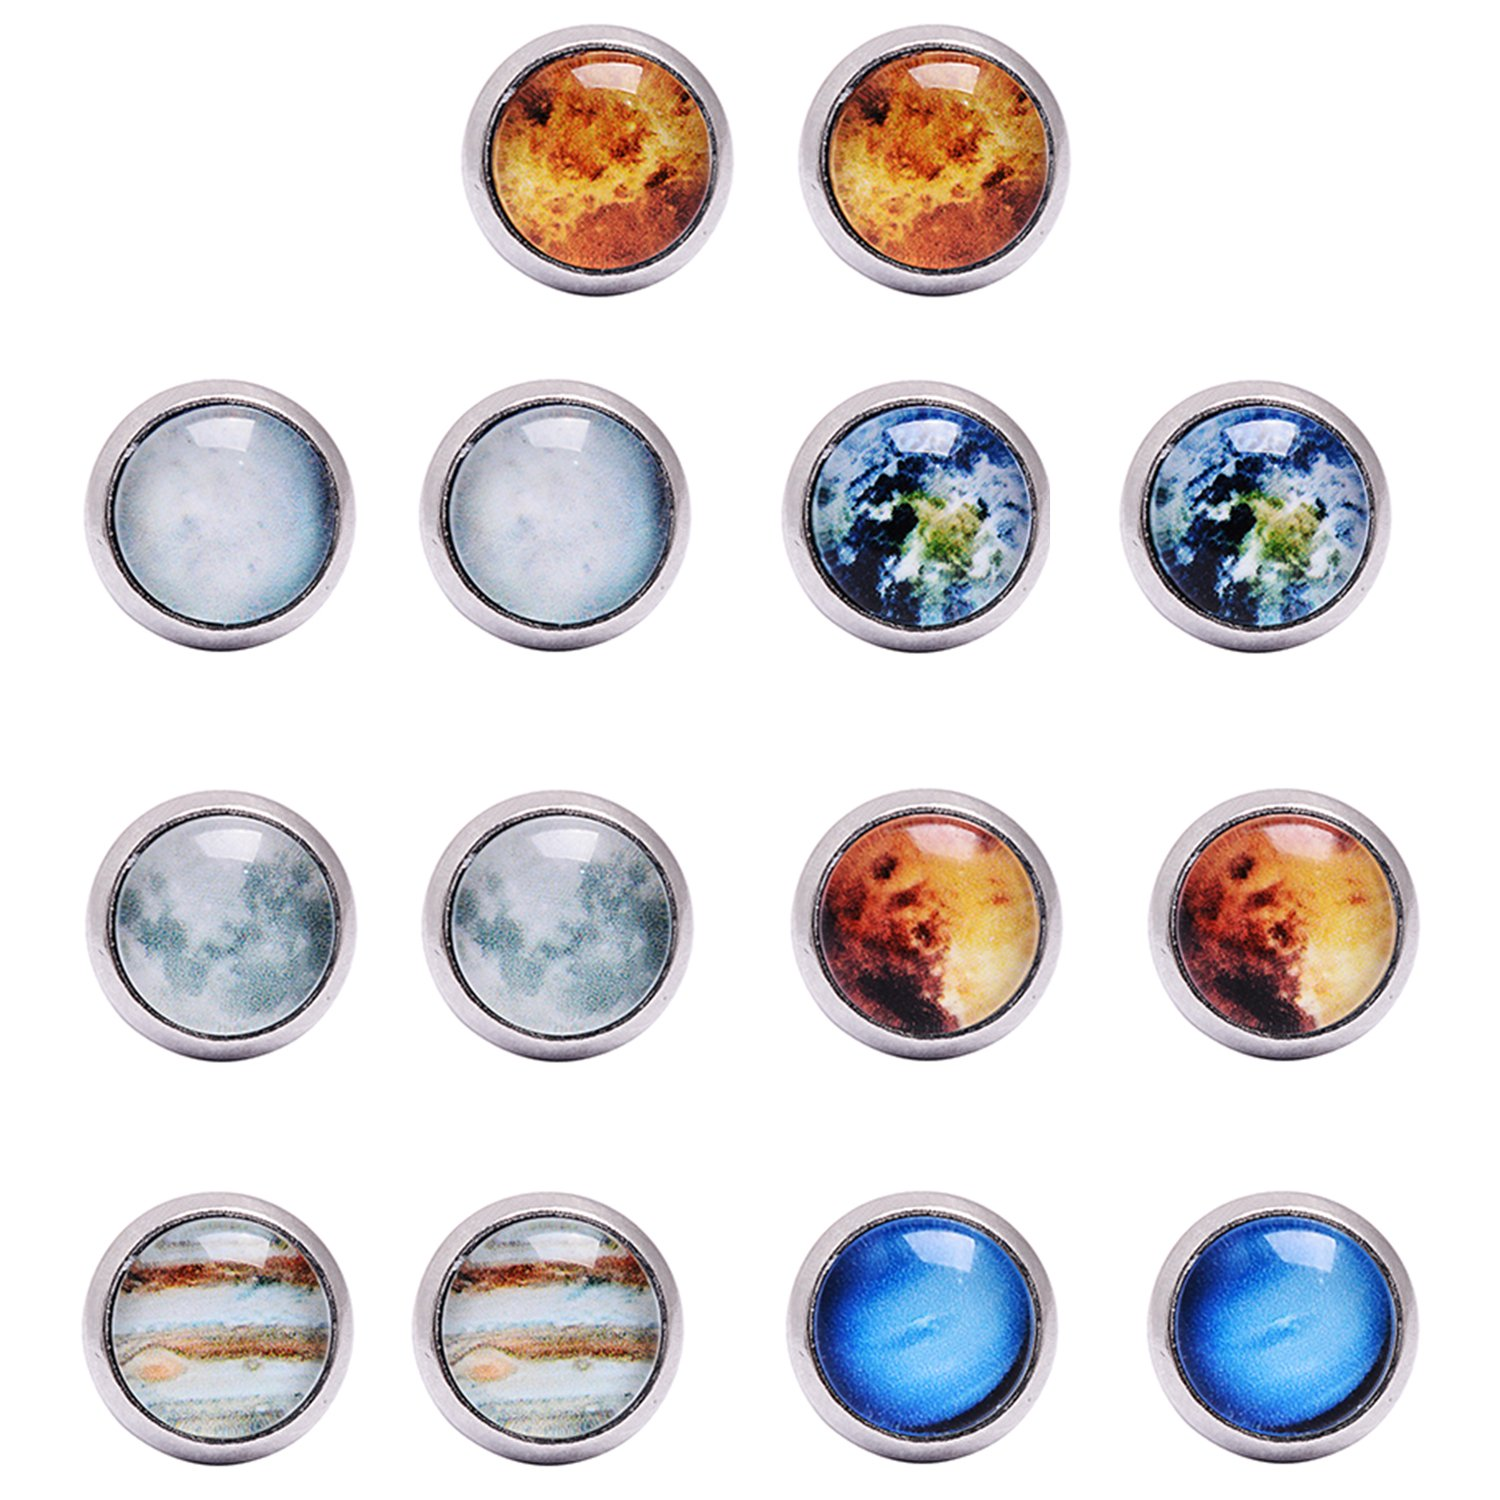 QILMILY 7 Pairs Solar System Galaxy Universe Unisex Planet Mens Womens Stainless Steel Stud Earrings Gifts for Kids Girls